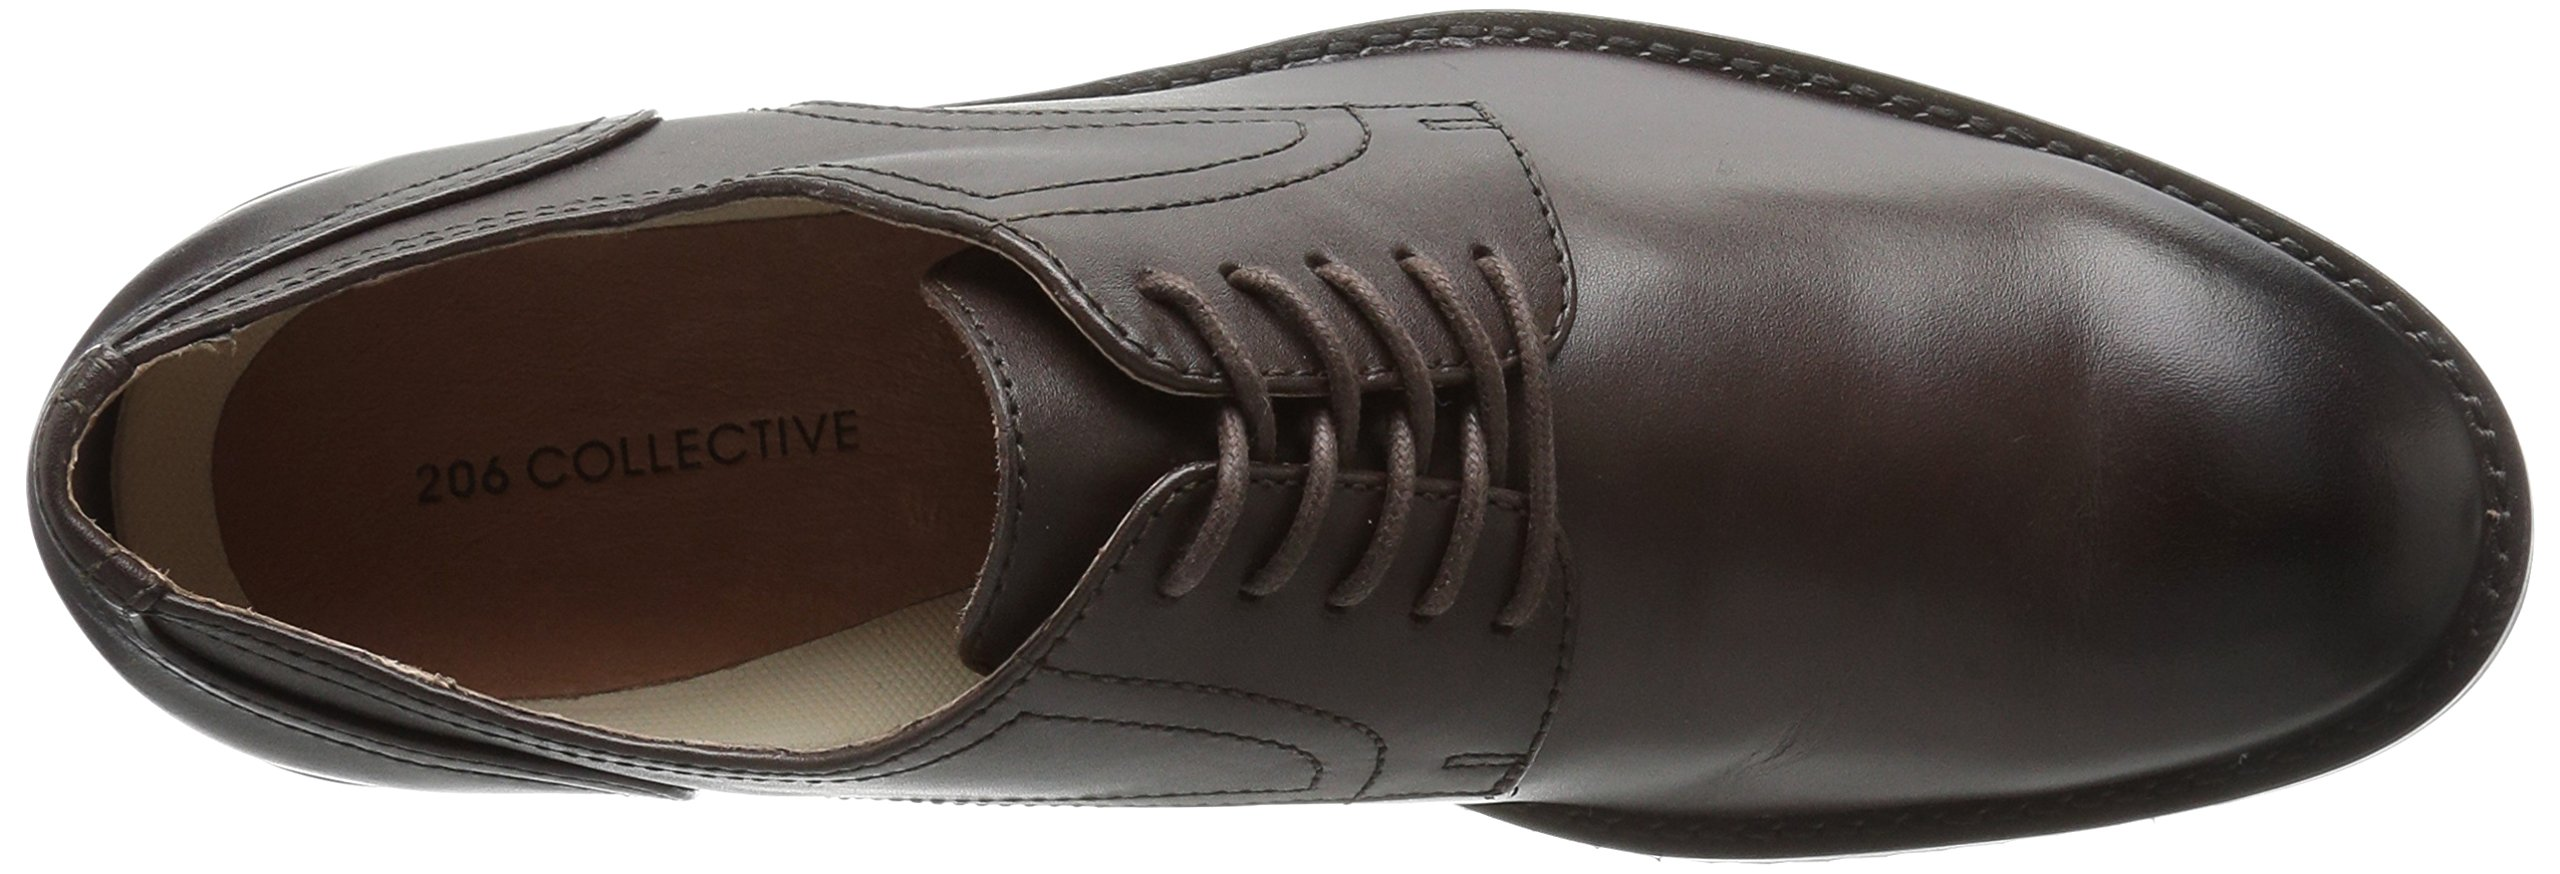 206 Collective Men's Concord Plain-Toe Oxford Shoe, Chocolate Brown, 11 D US by 206 Collective (Image #8)